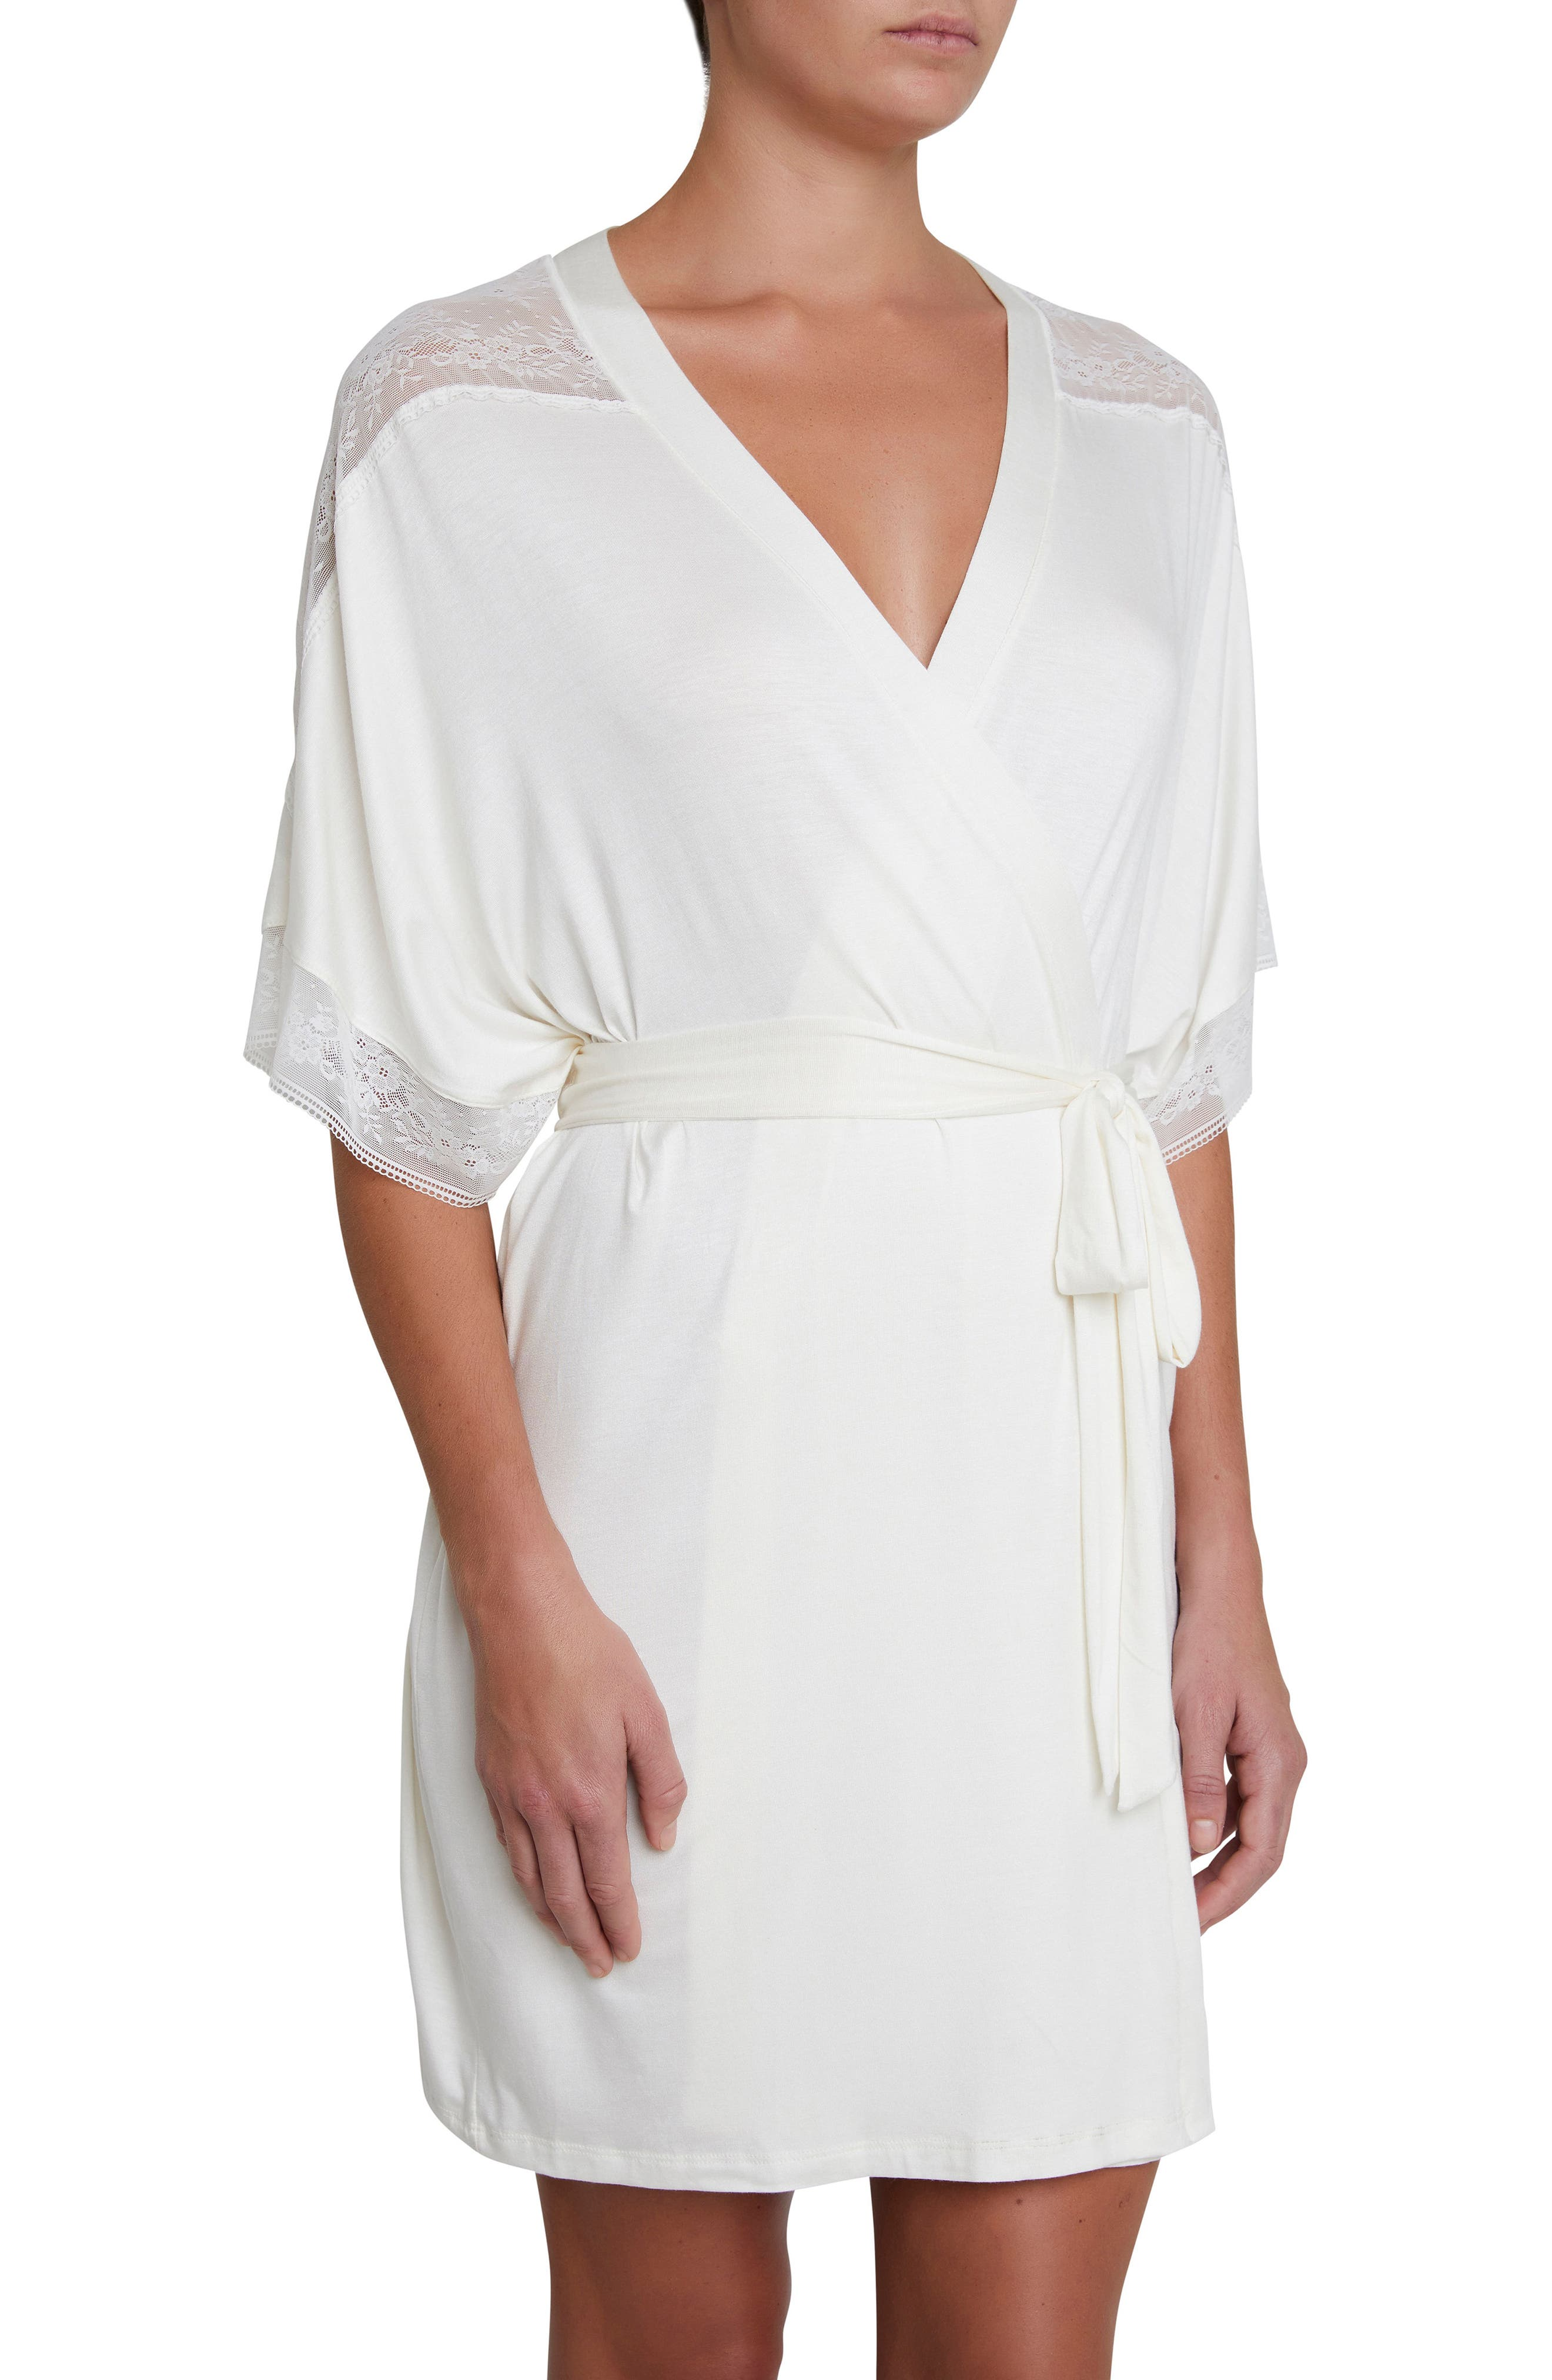 Adora the Date Short Robe,                             Main thumbnail 1, color,                             IVORY